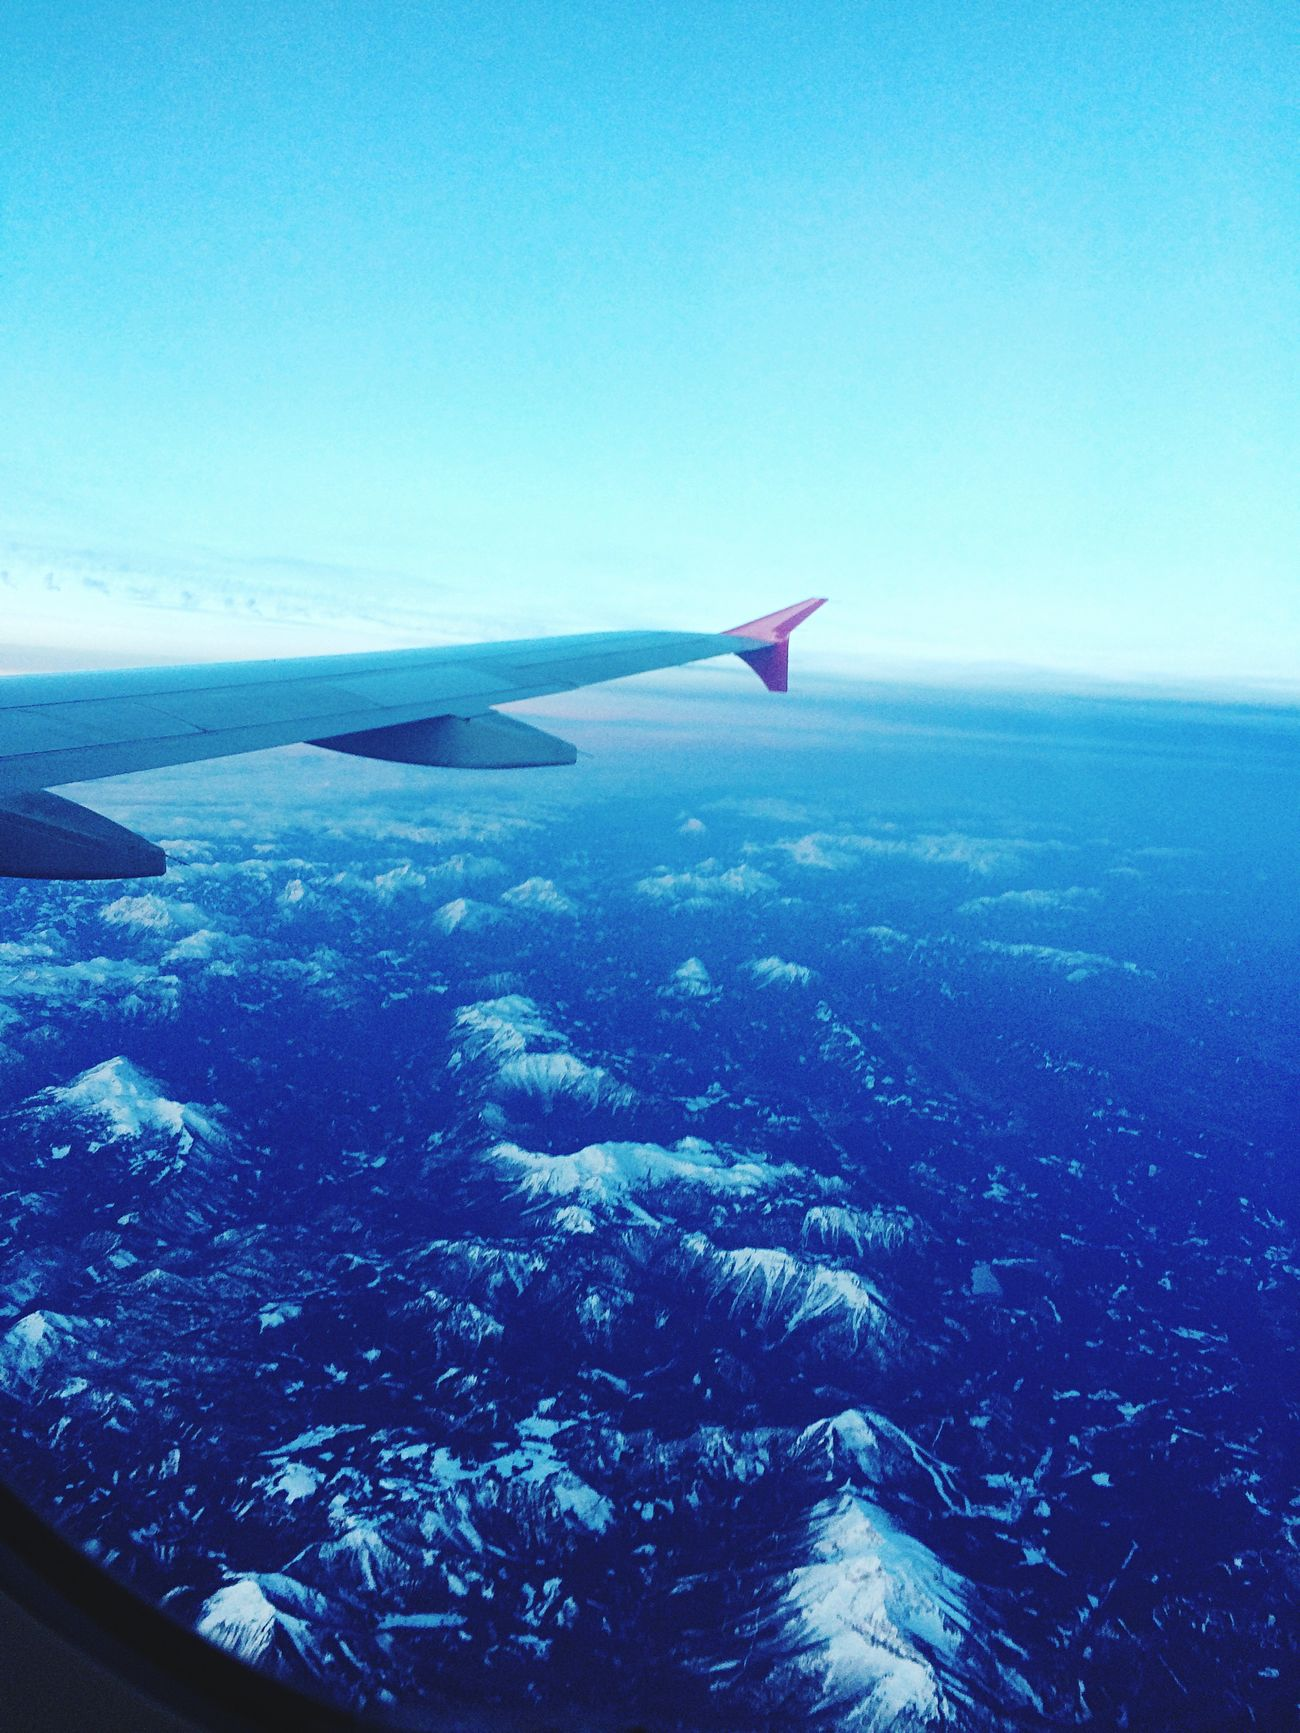 Flying High Beauty In Nature Airplane Blue Flying Nature Sky Mode Of Transport Aircraft Wing Airplane Wing No People Aerial View Transportation Sea Memories Day Scenics Outdoors Water Flying High